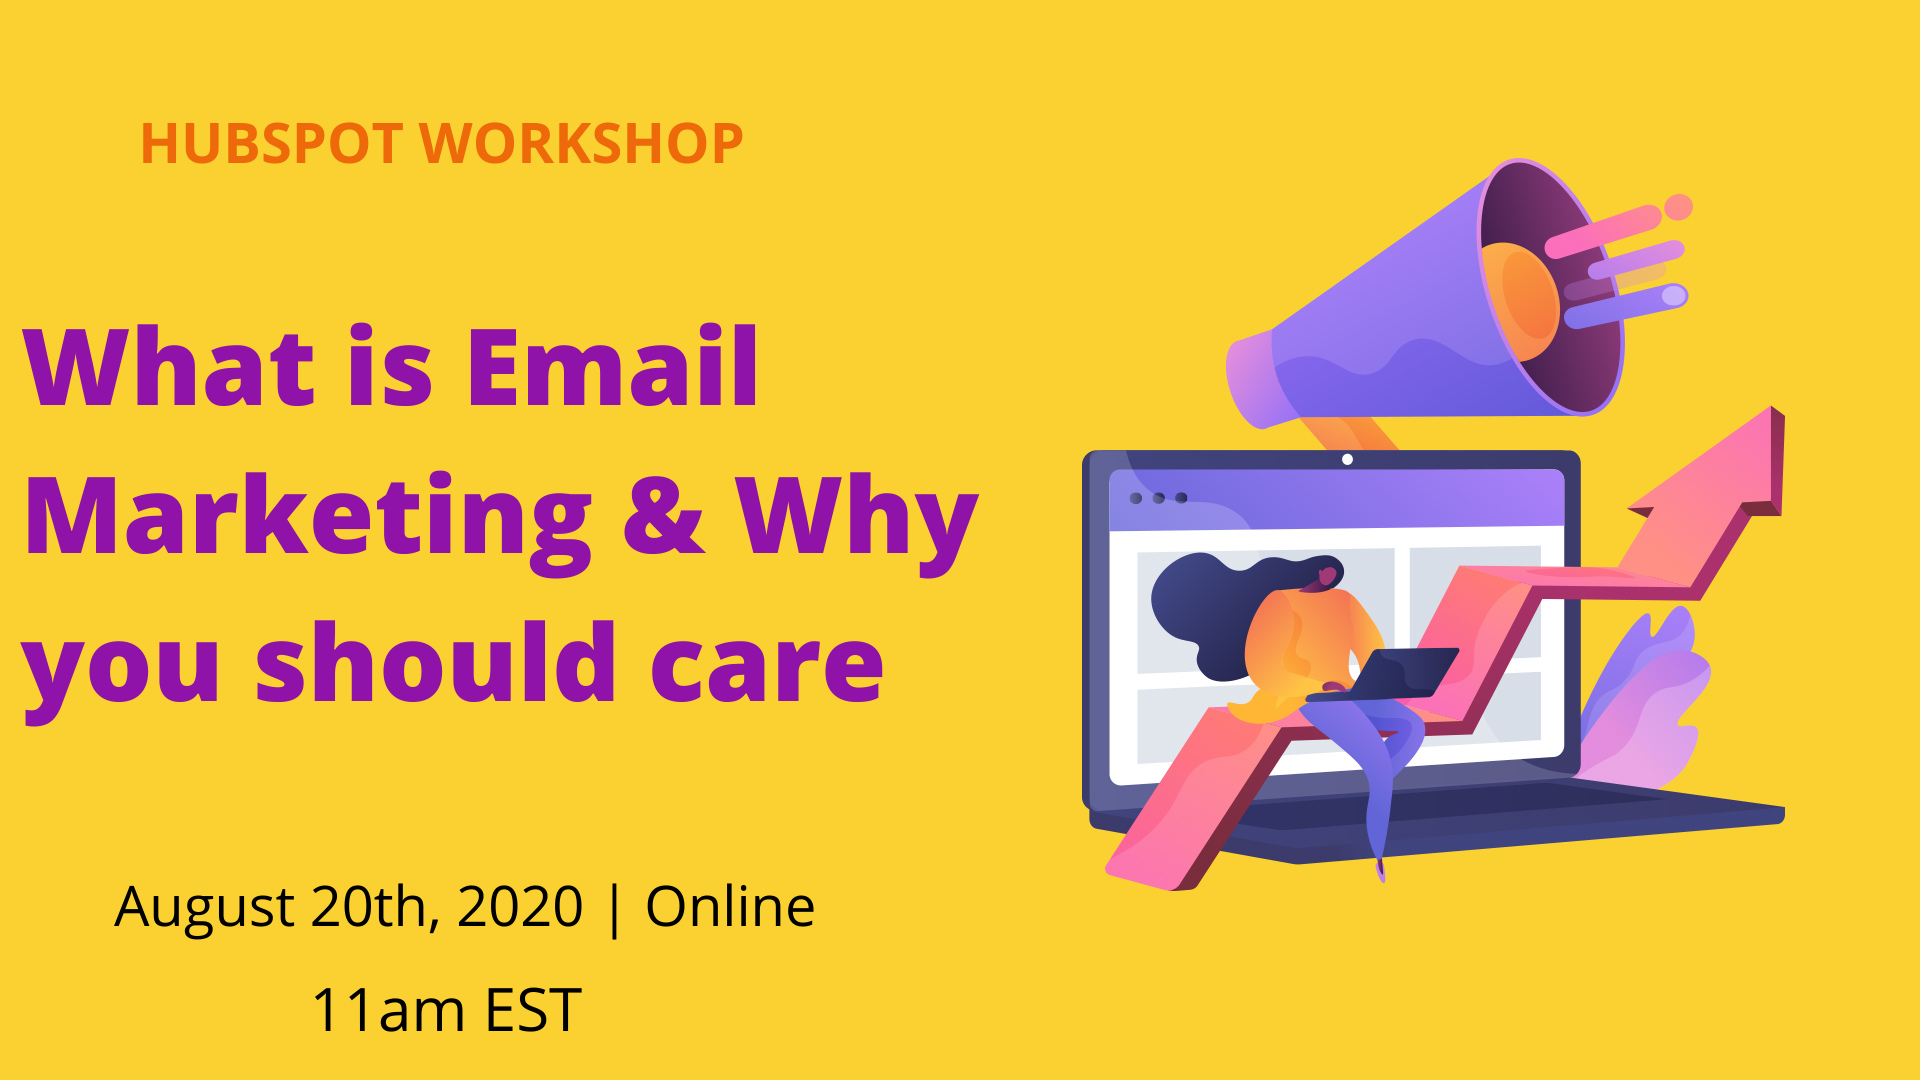 What is Email Marketing & Why You Should Care